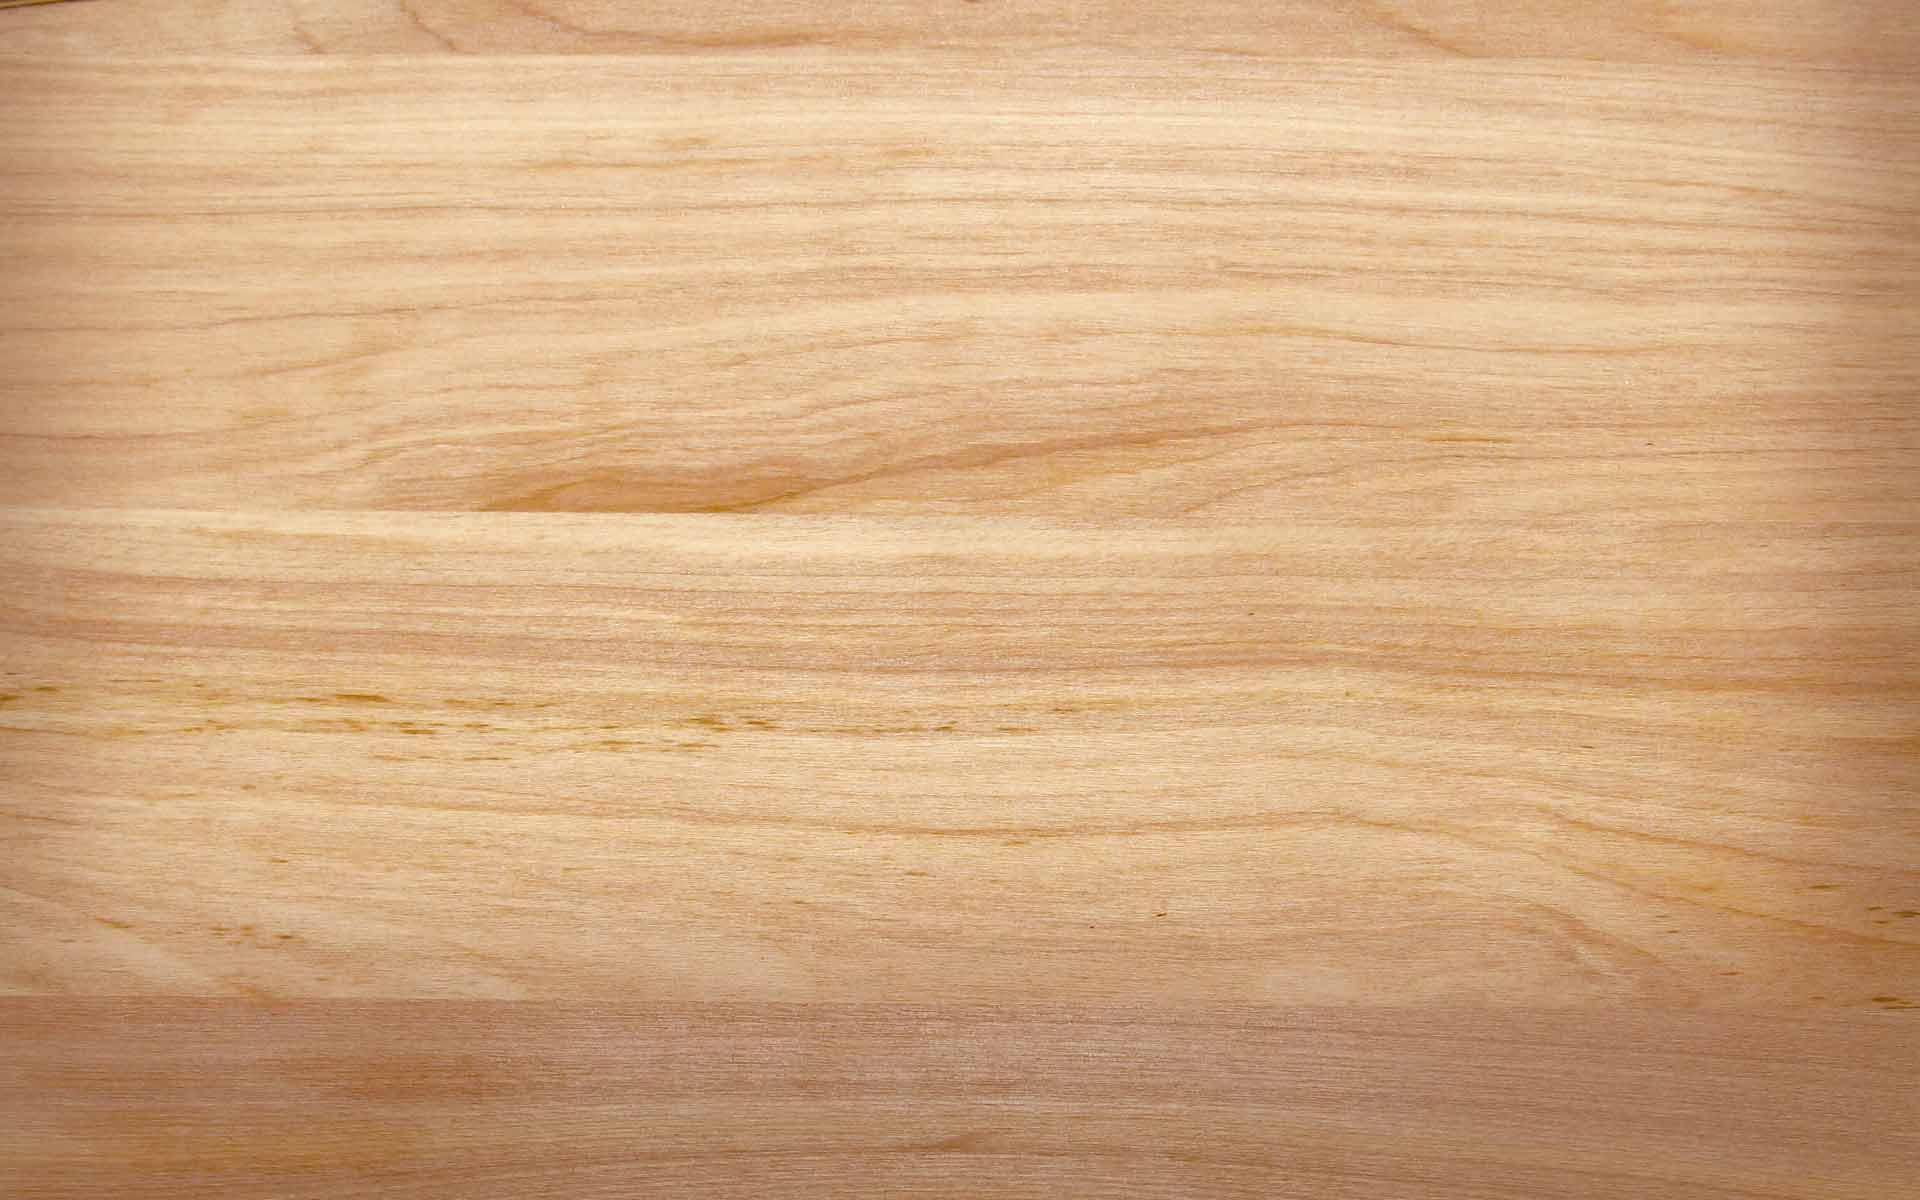 Pine light wood grain texture table lift and cook